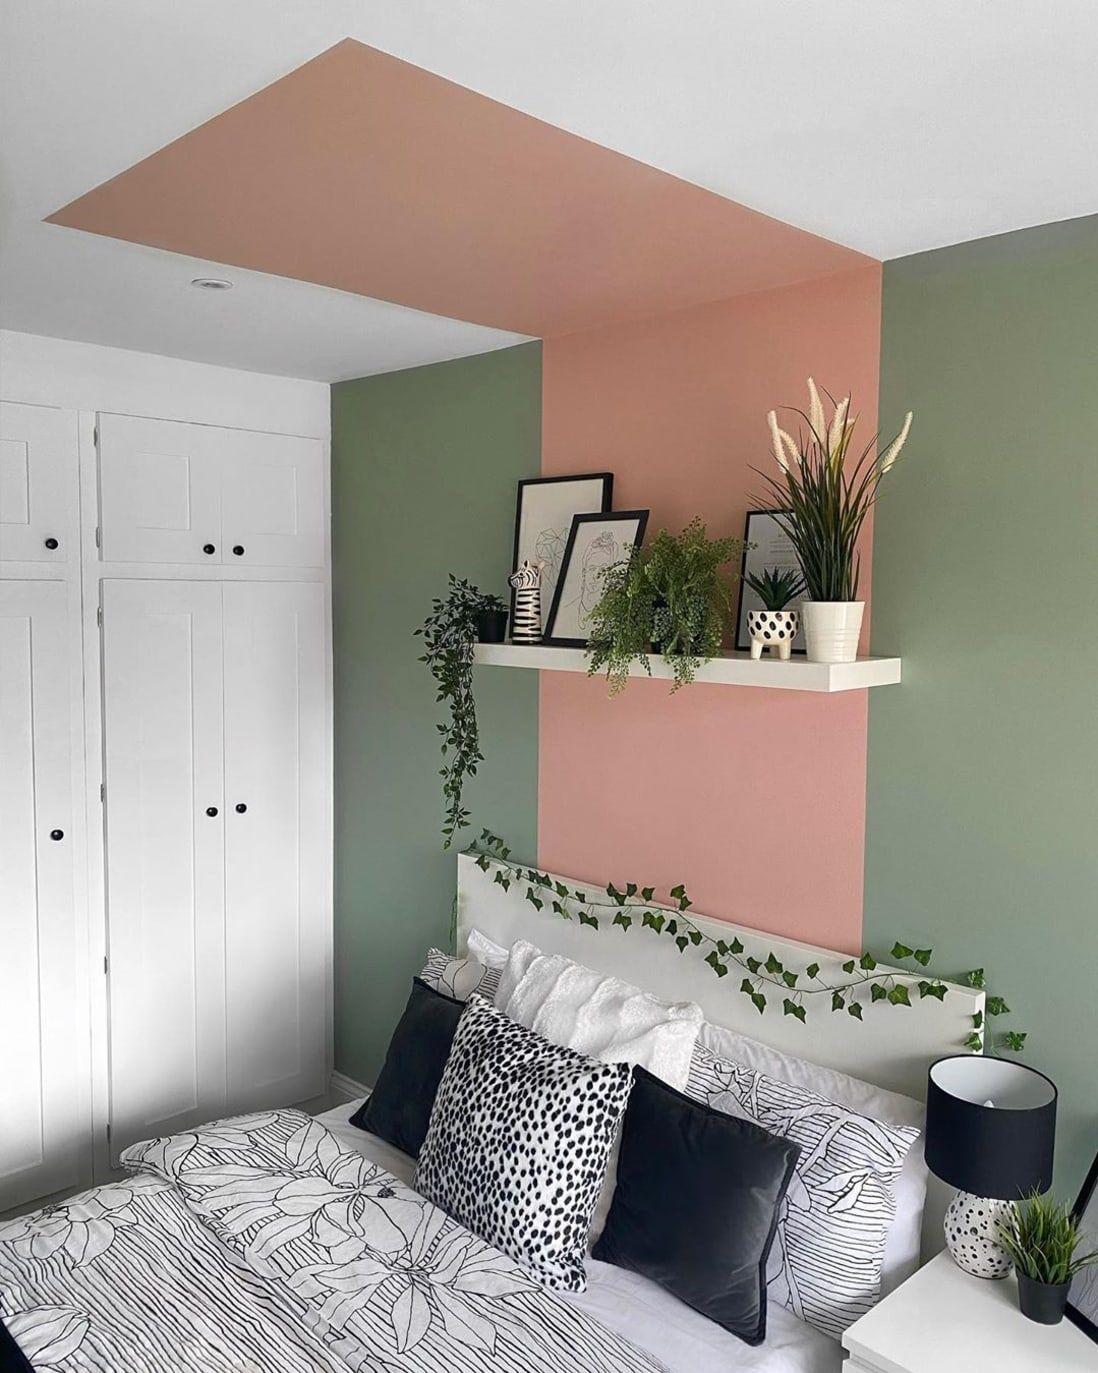 The Best Ceiling Paint Color For Every Type Of Room Bedroom Wall Designs Bedroom Wall Paint Home Room Design Wall paint for bedroom